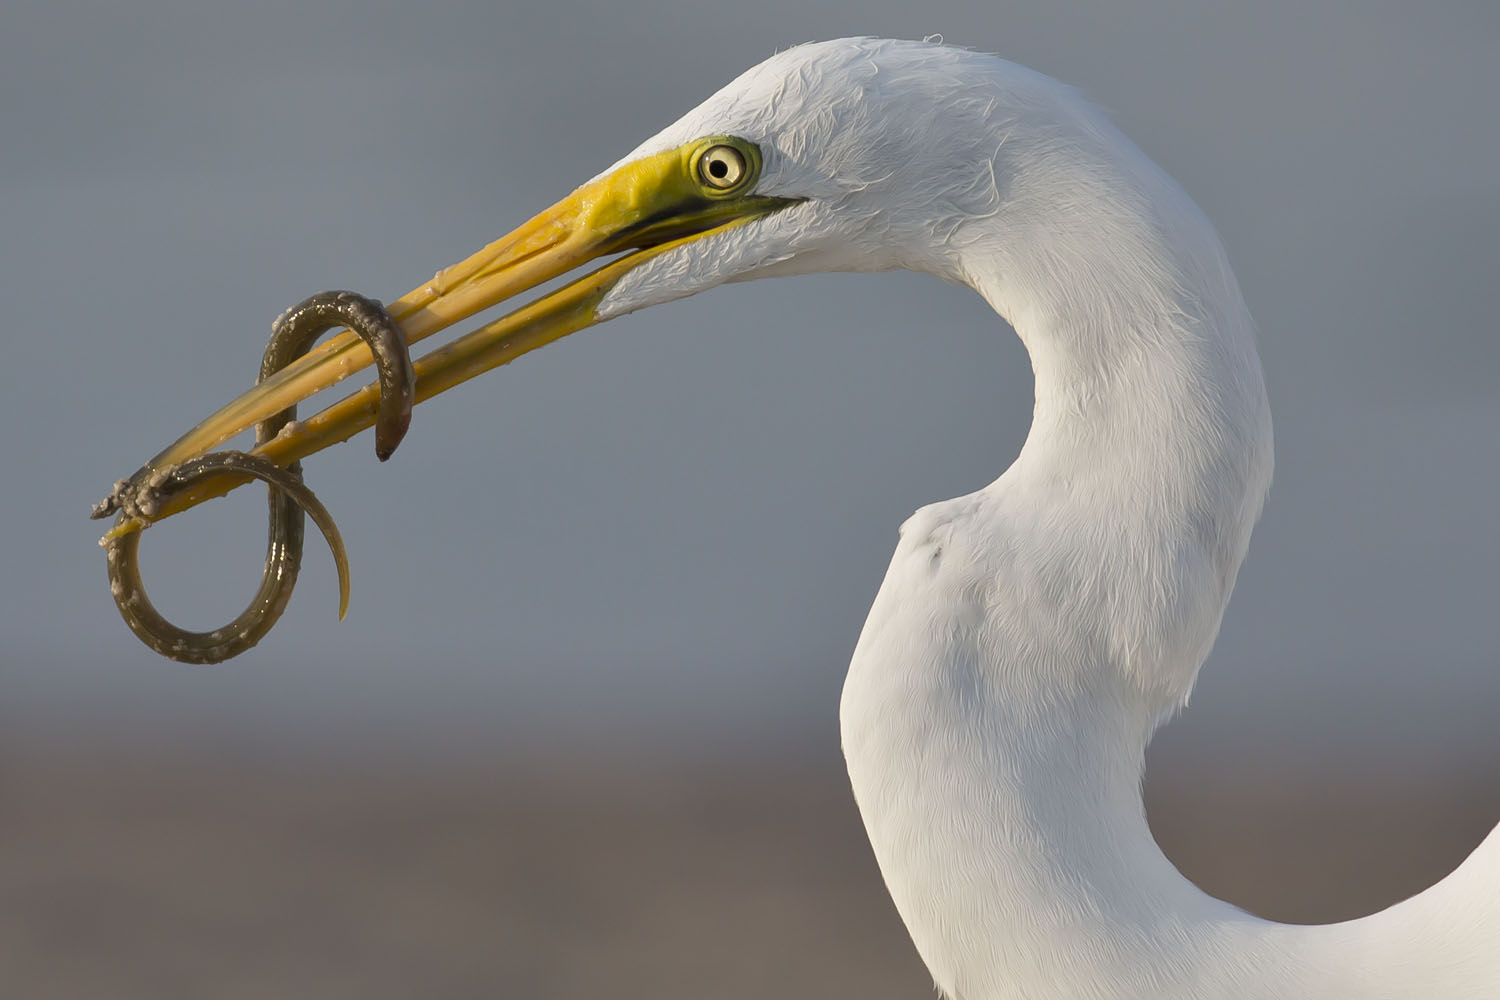 worm wrapped around bill of great egret